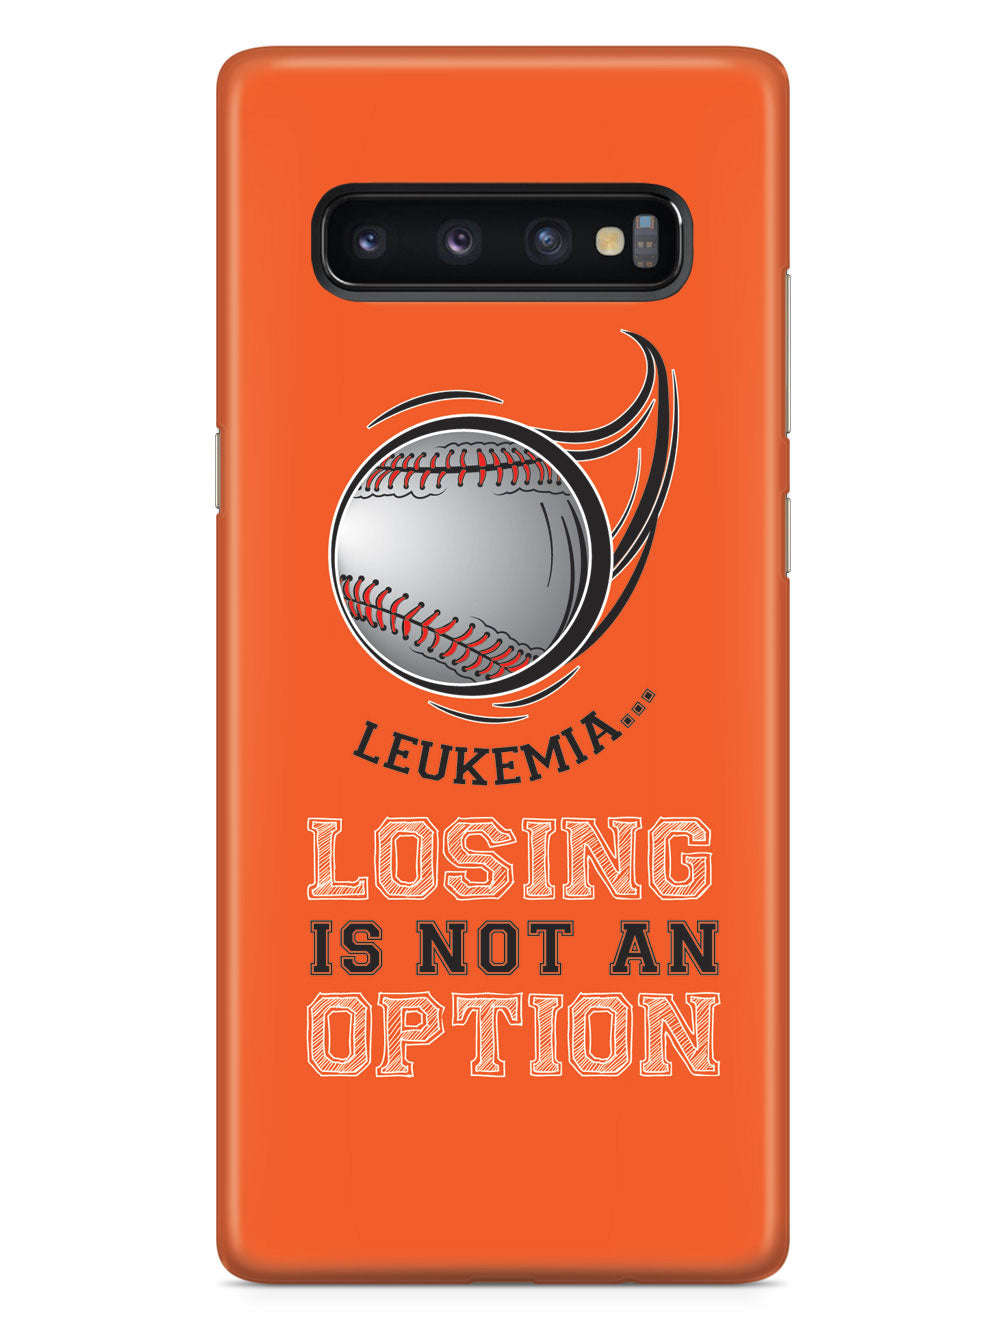 Leukemia - Losing is not an Option Orange Baseball Case